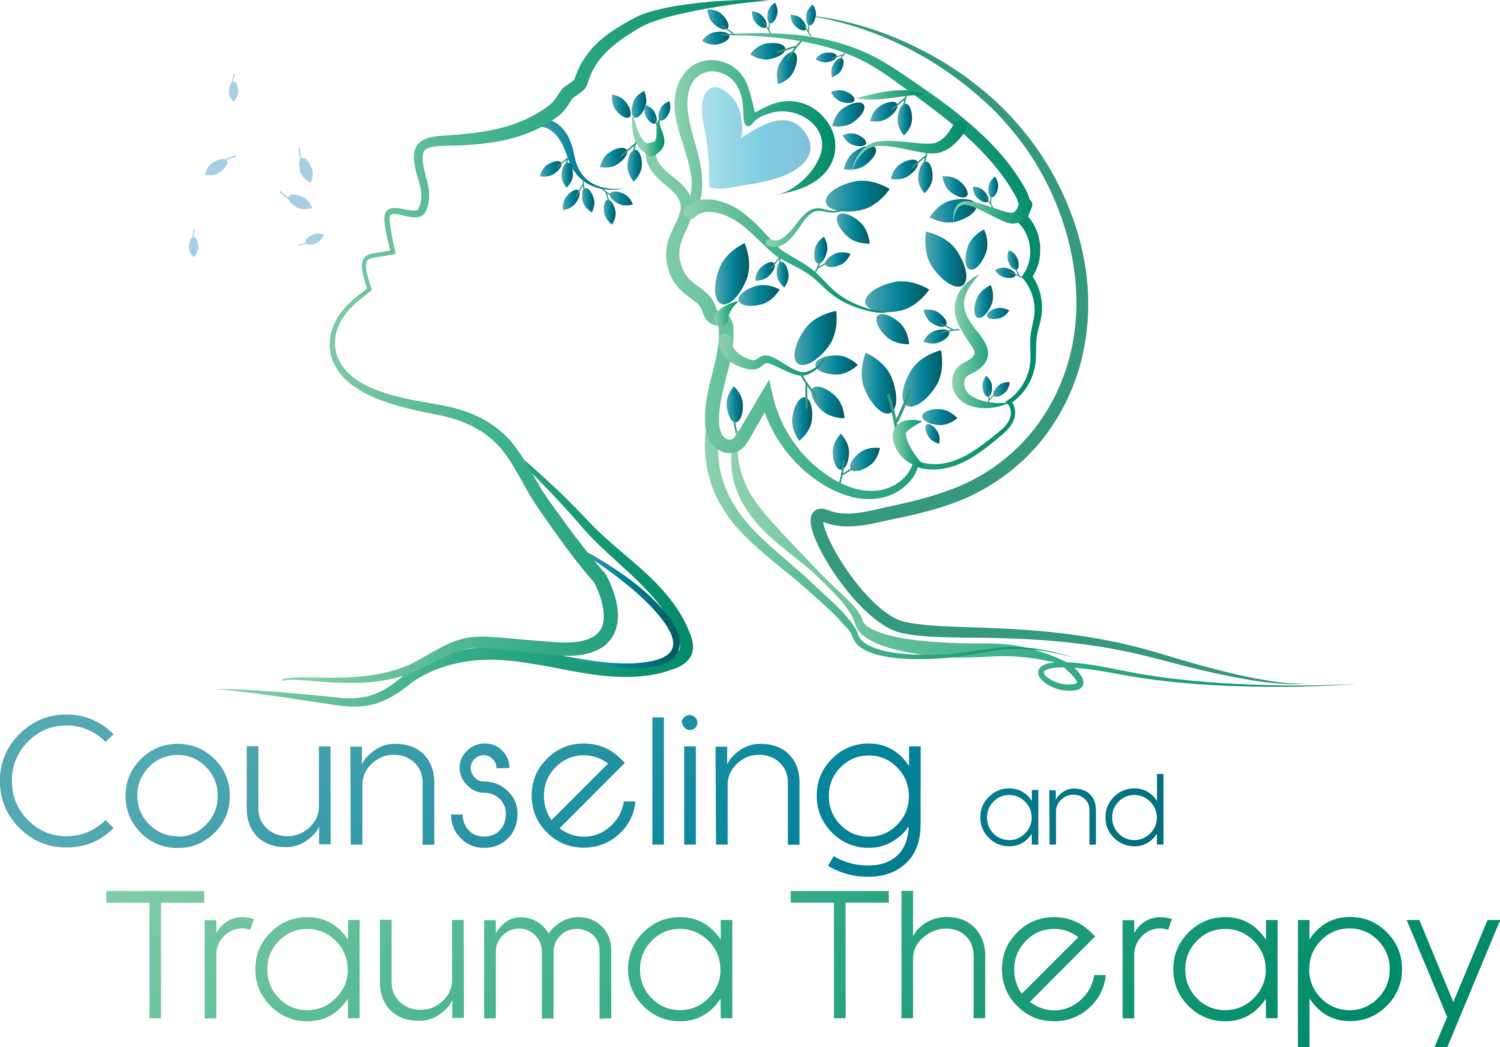 counseling and trauma therapy adults and teens counseling online